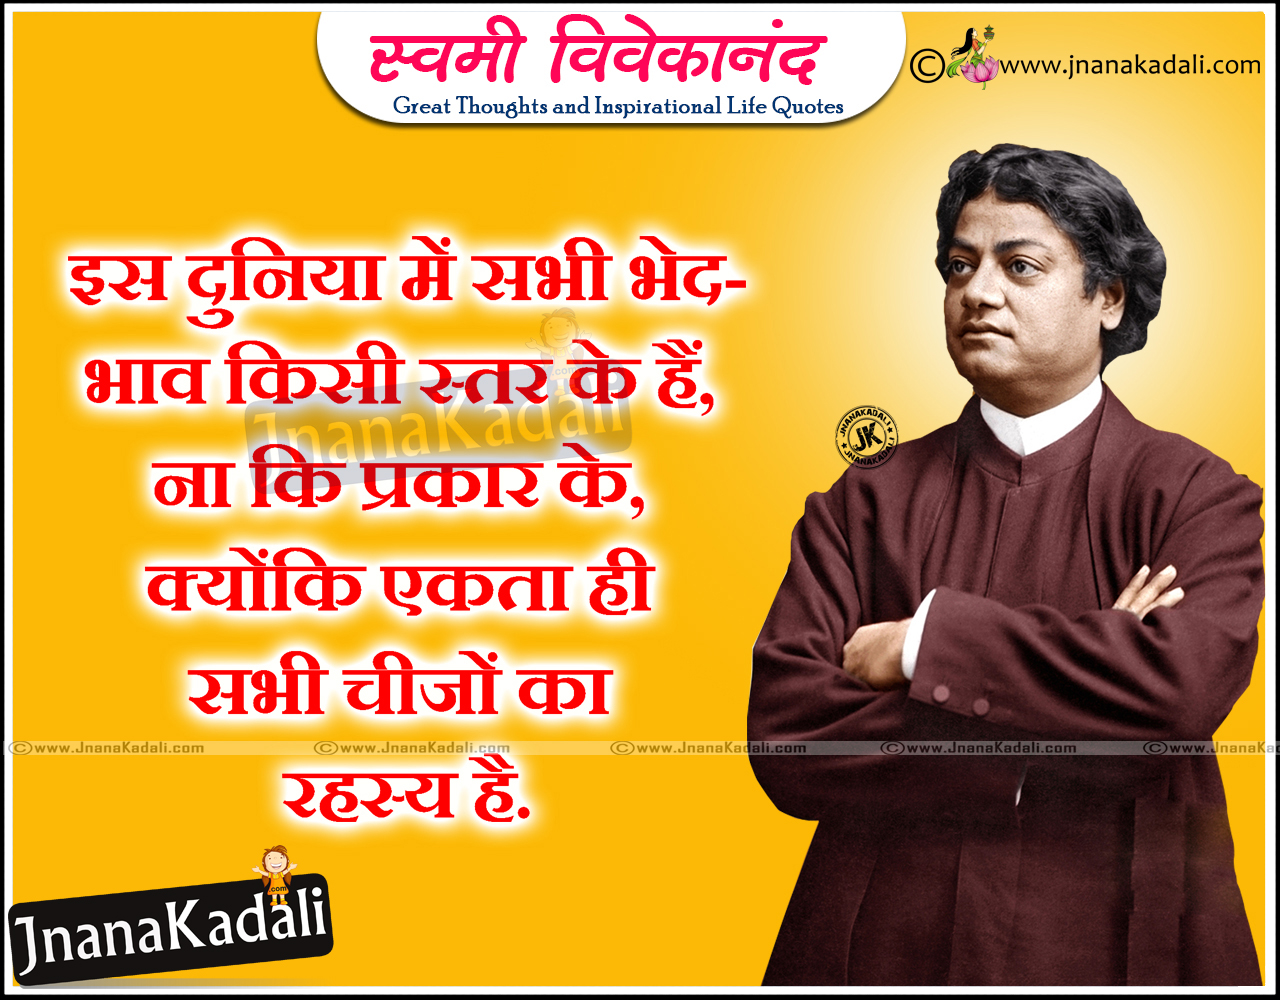 Swami Vivekananda Success Quotes In Hindi: JNANA KADALI.COM